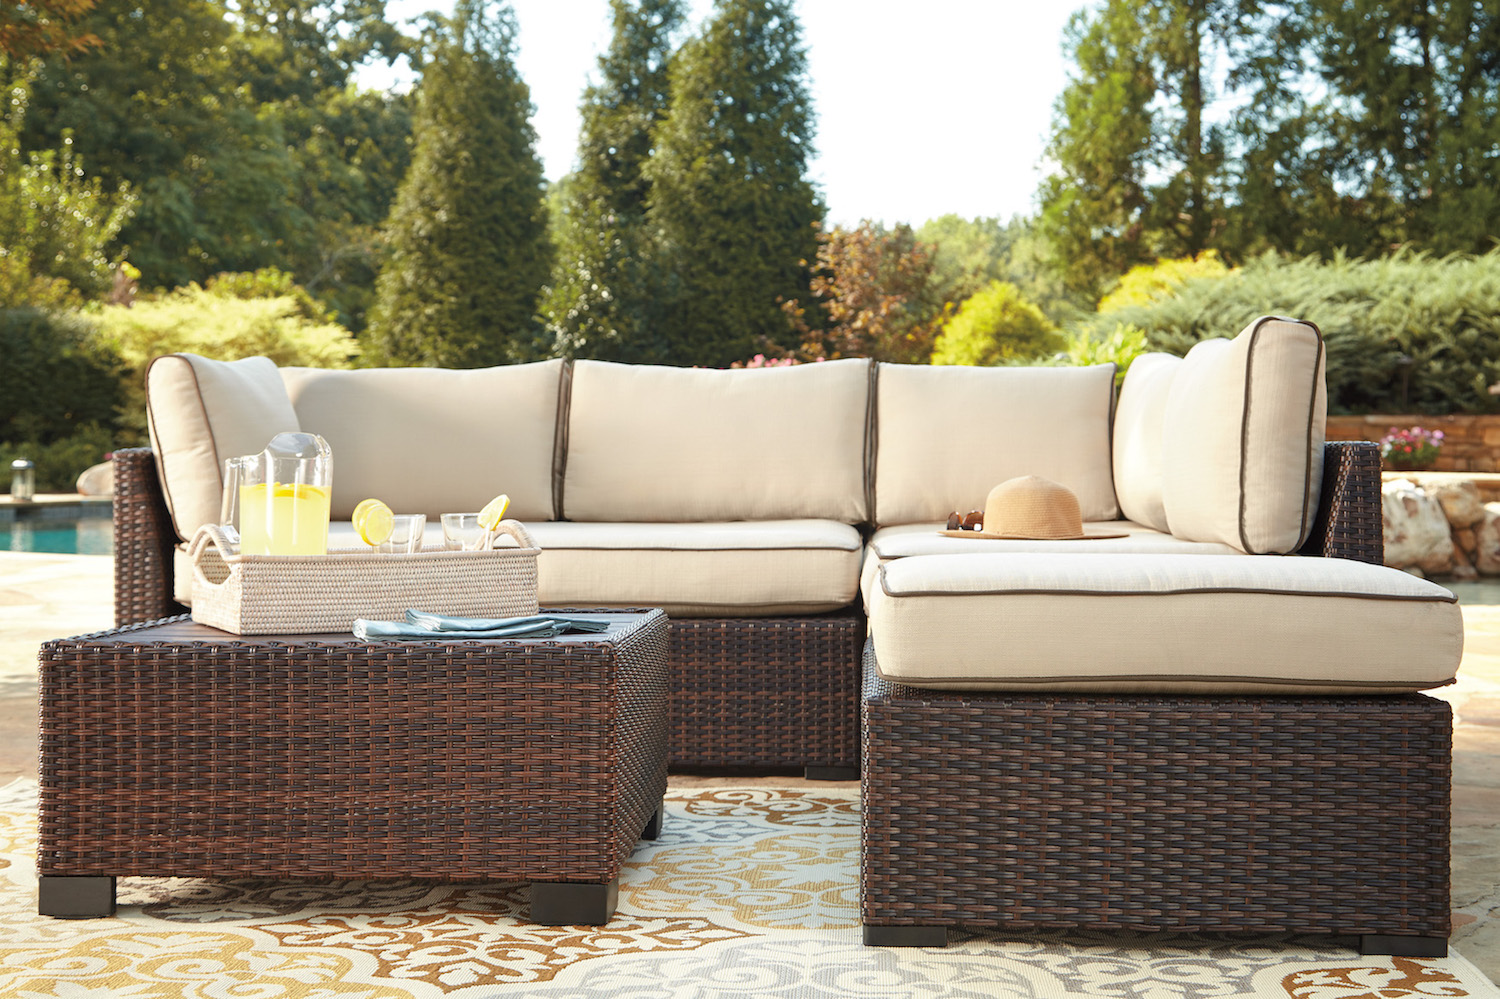 Outdoor Wicker Sectional And Table